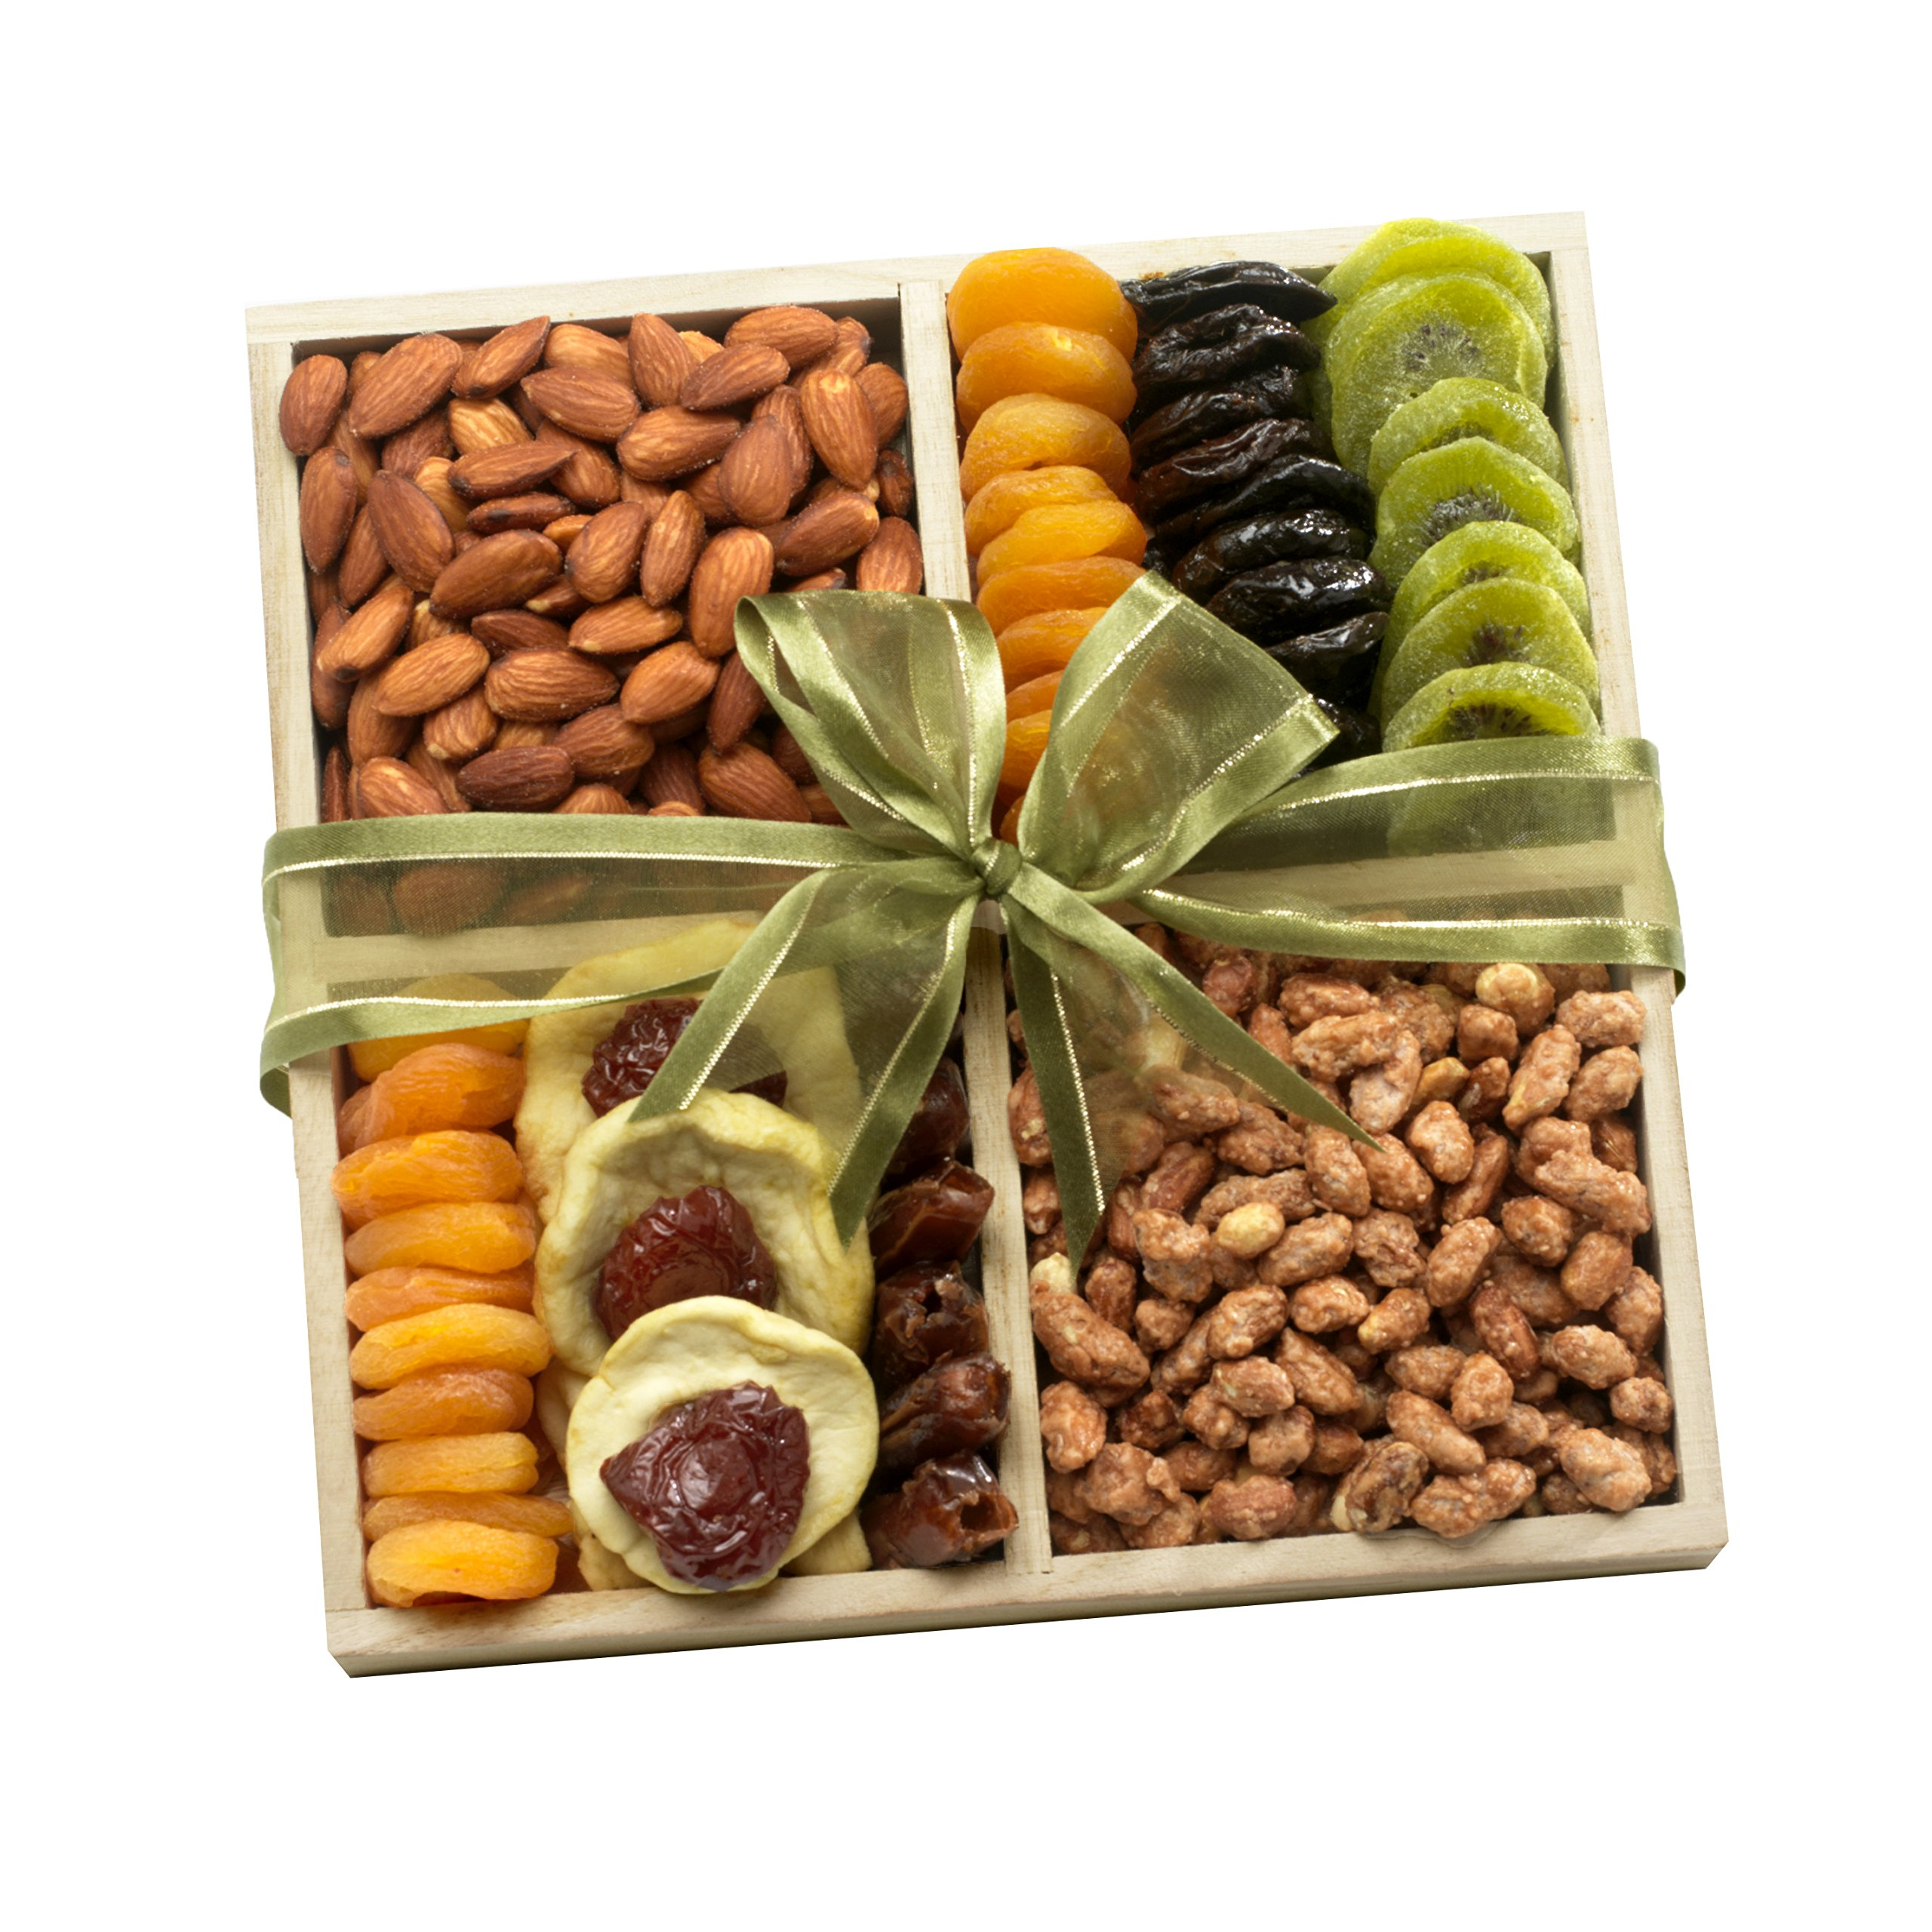 Broadway Basketeers Healthy Gourmet Gift Tray: Dried Fruit Assortment